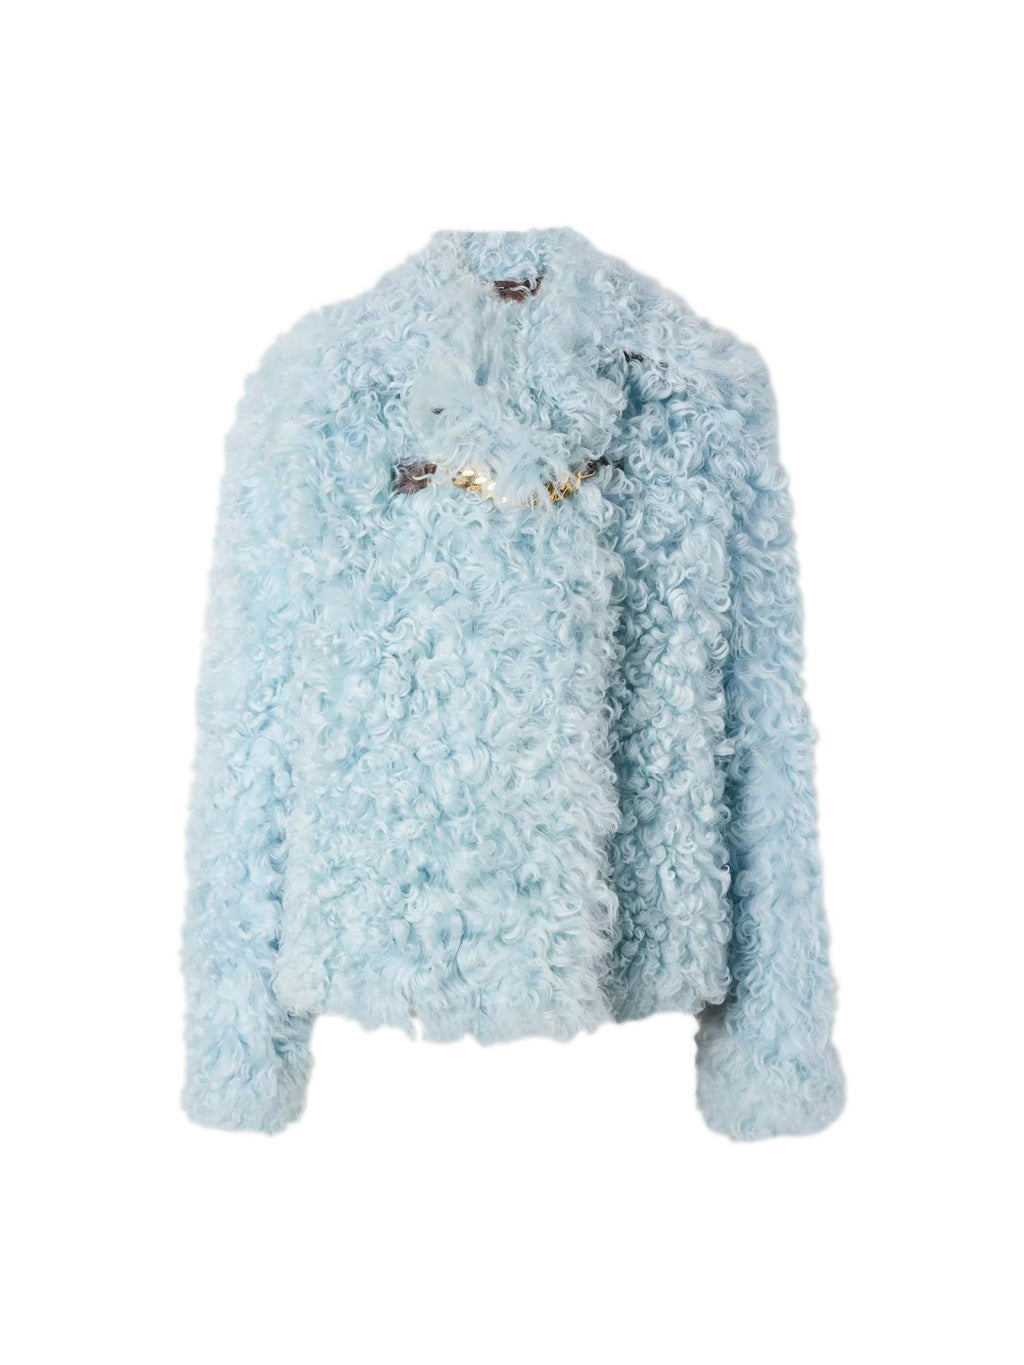 Light Blue Shearling Jacket